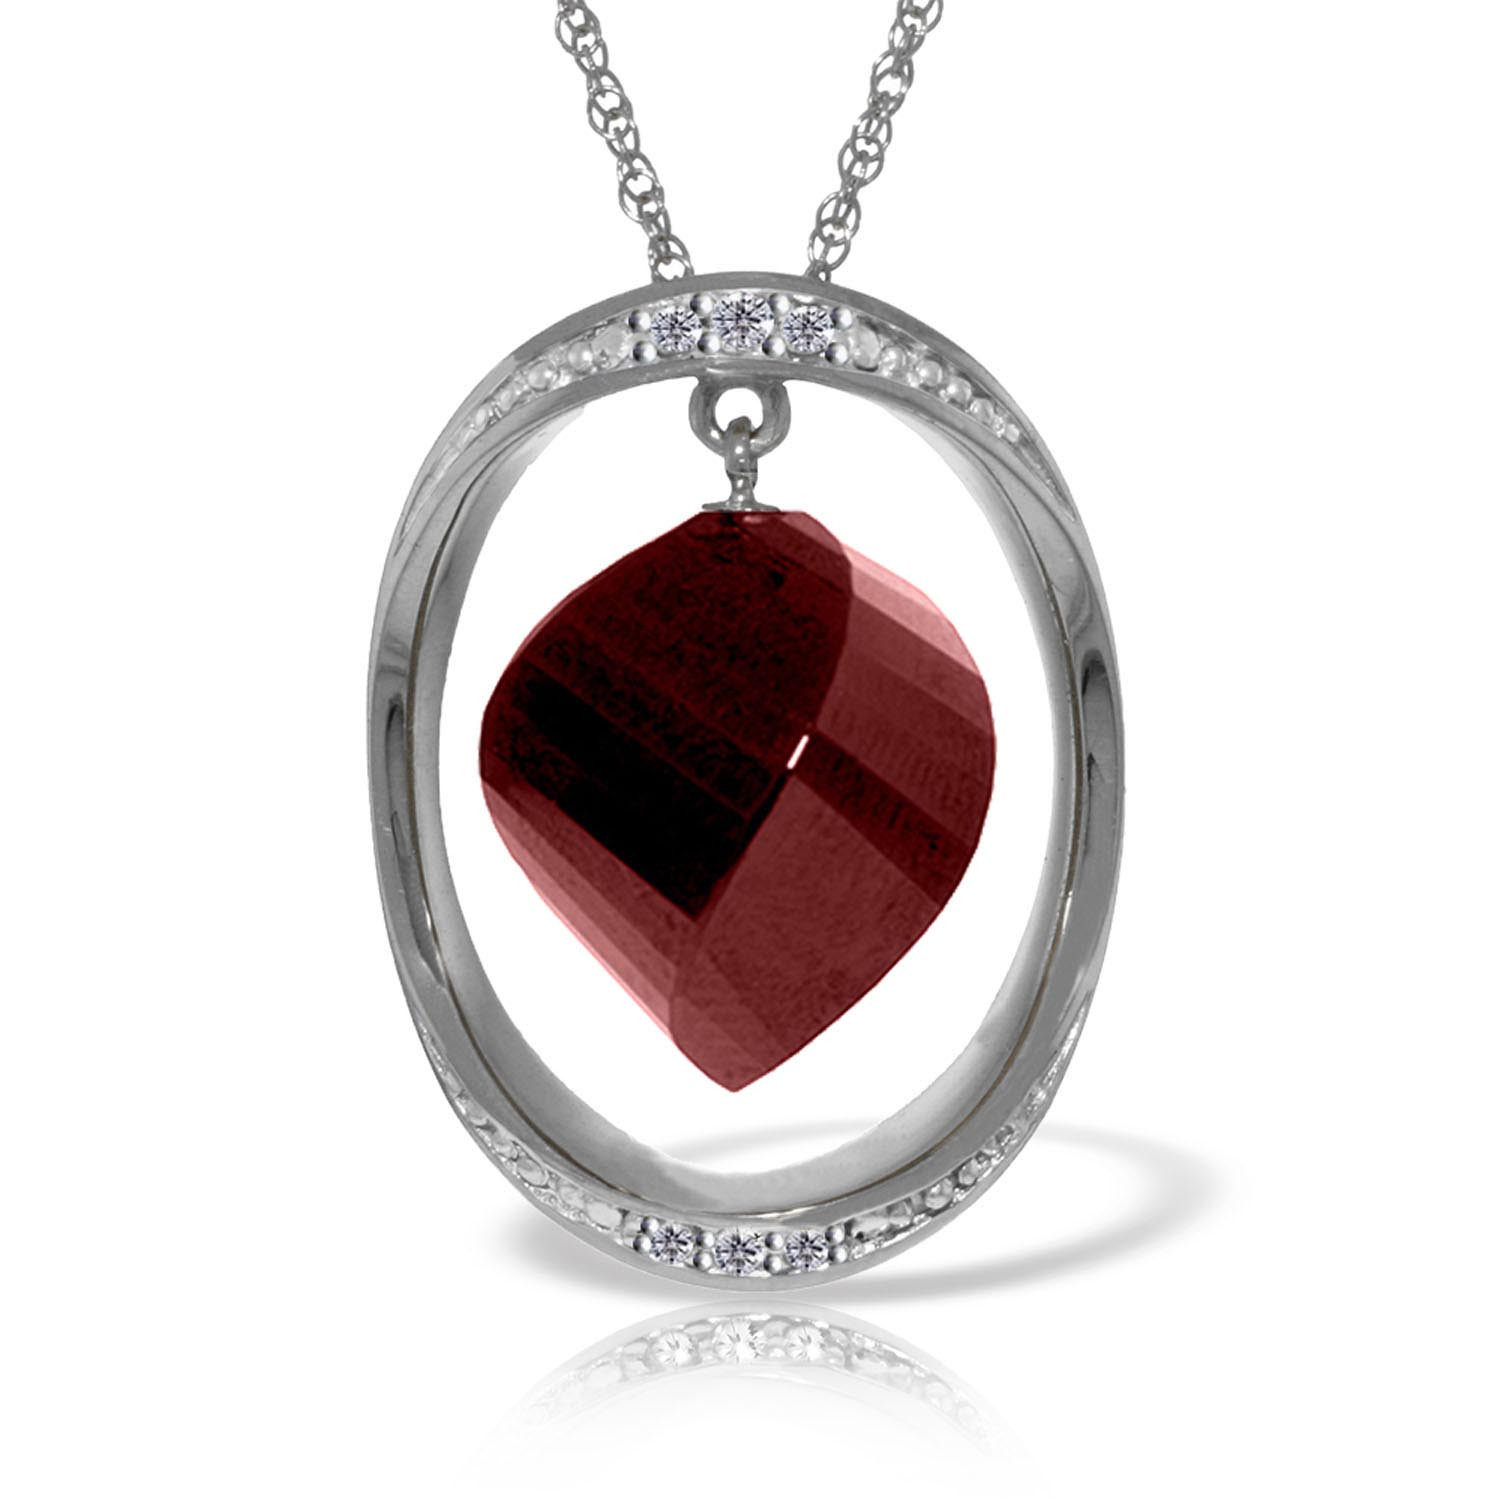 Ruby & Diamond Pendant Necklace in 9ct White Gold